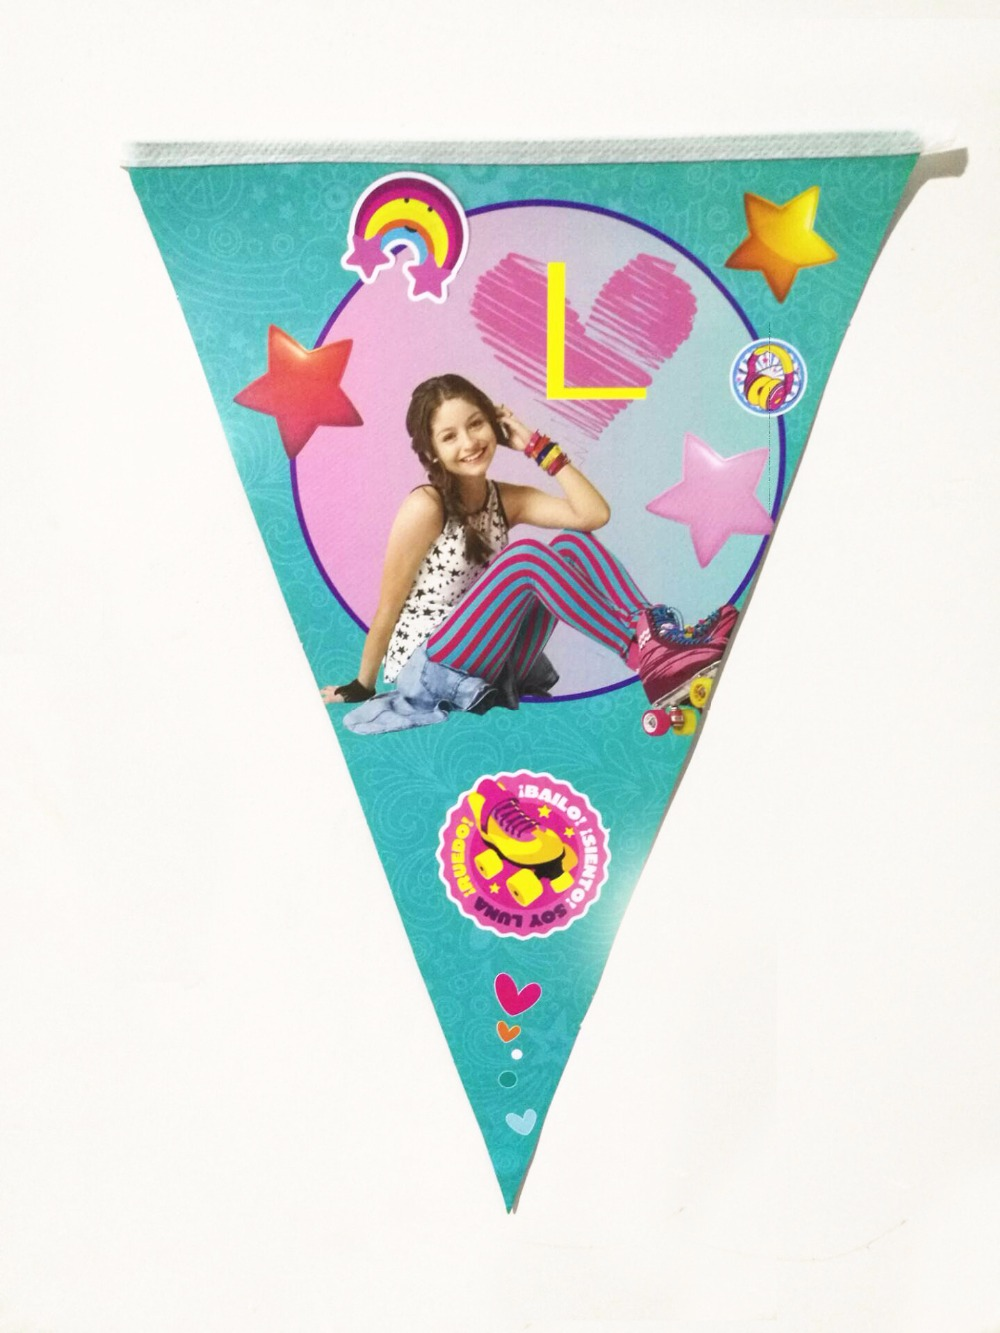 1set Soy Luna paper banner happy birthday party flag Kids girl favor party decoration So ...